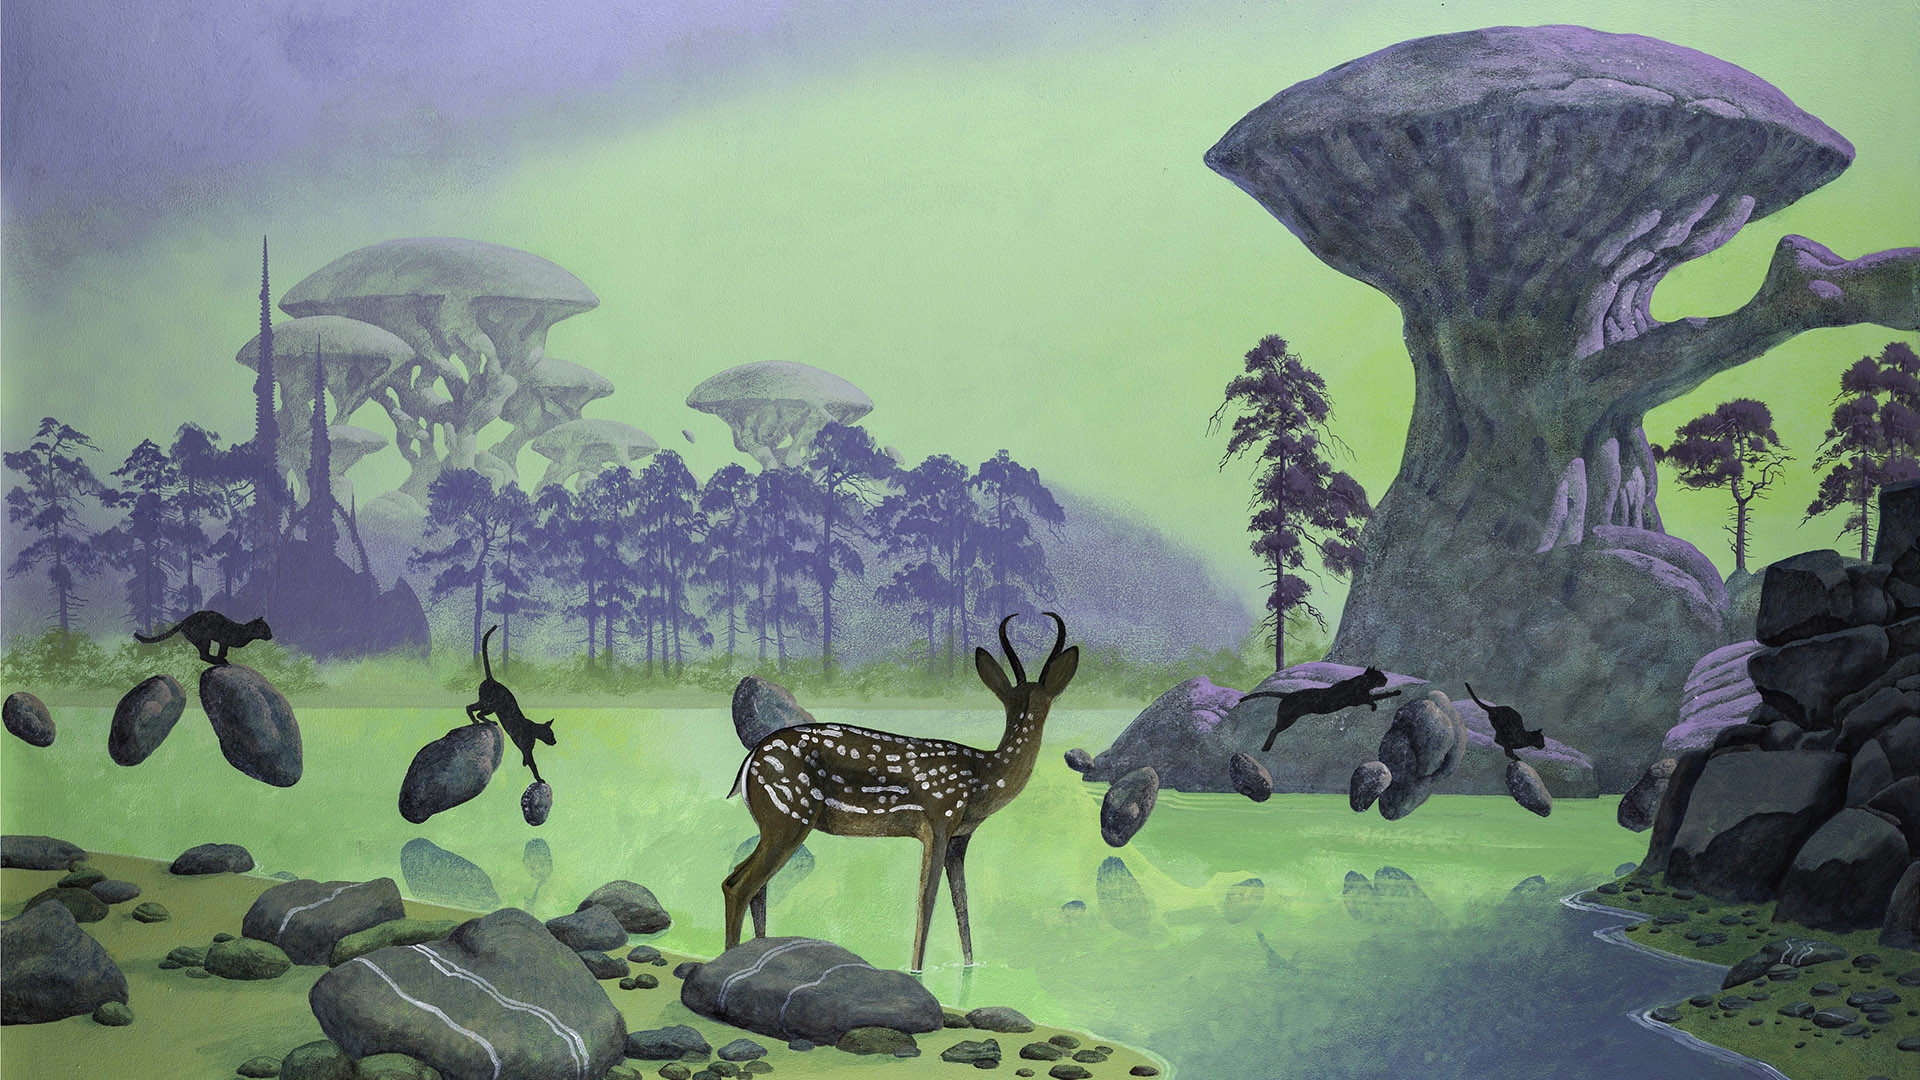 1920x1080 ... wallpaper Gallery Source · roger dean yes Ecosia